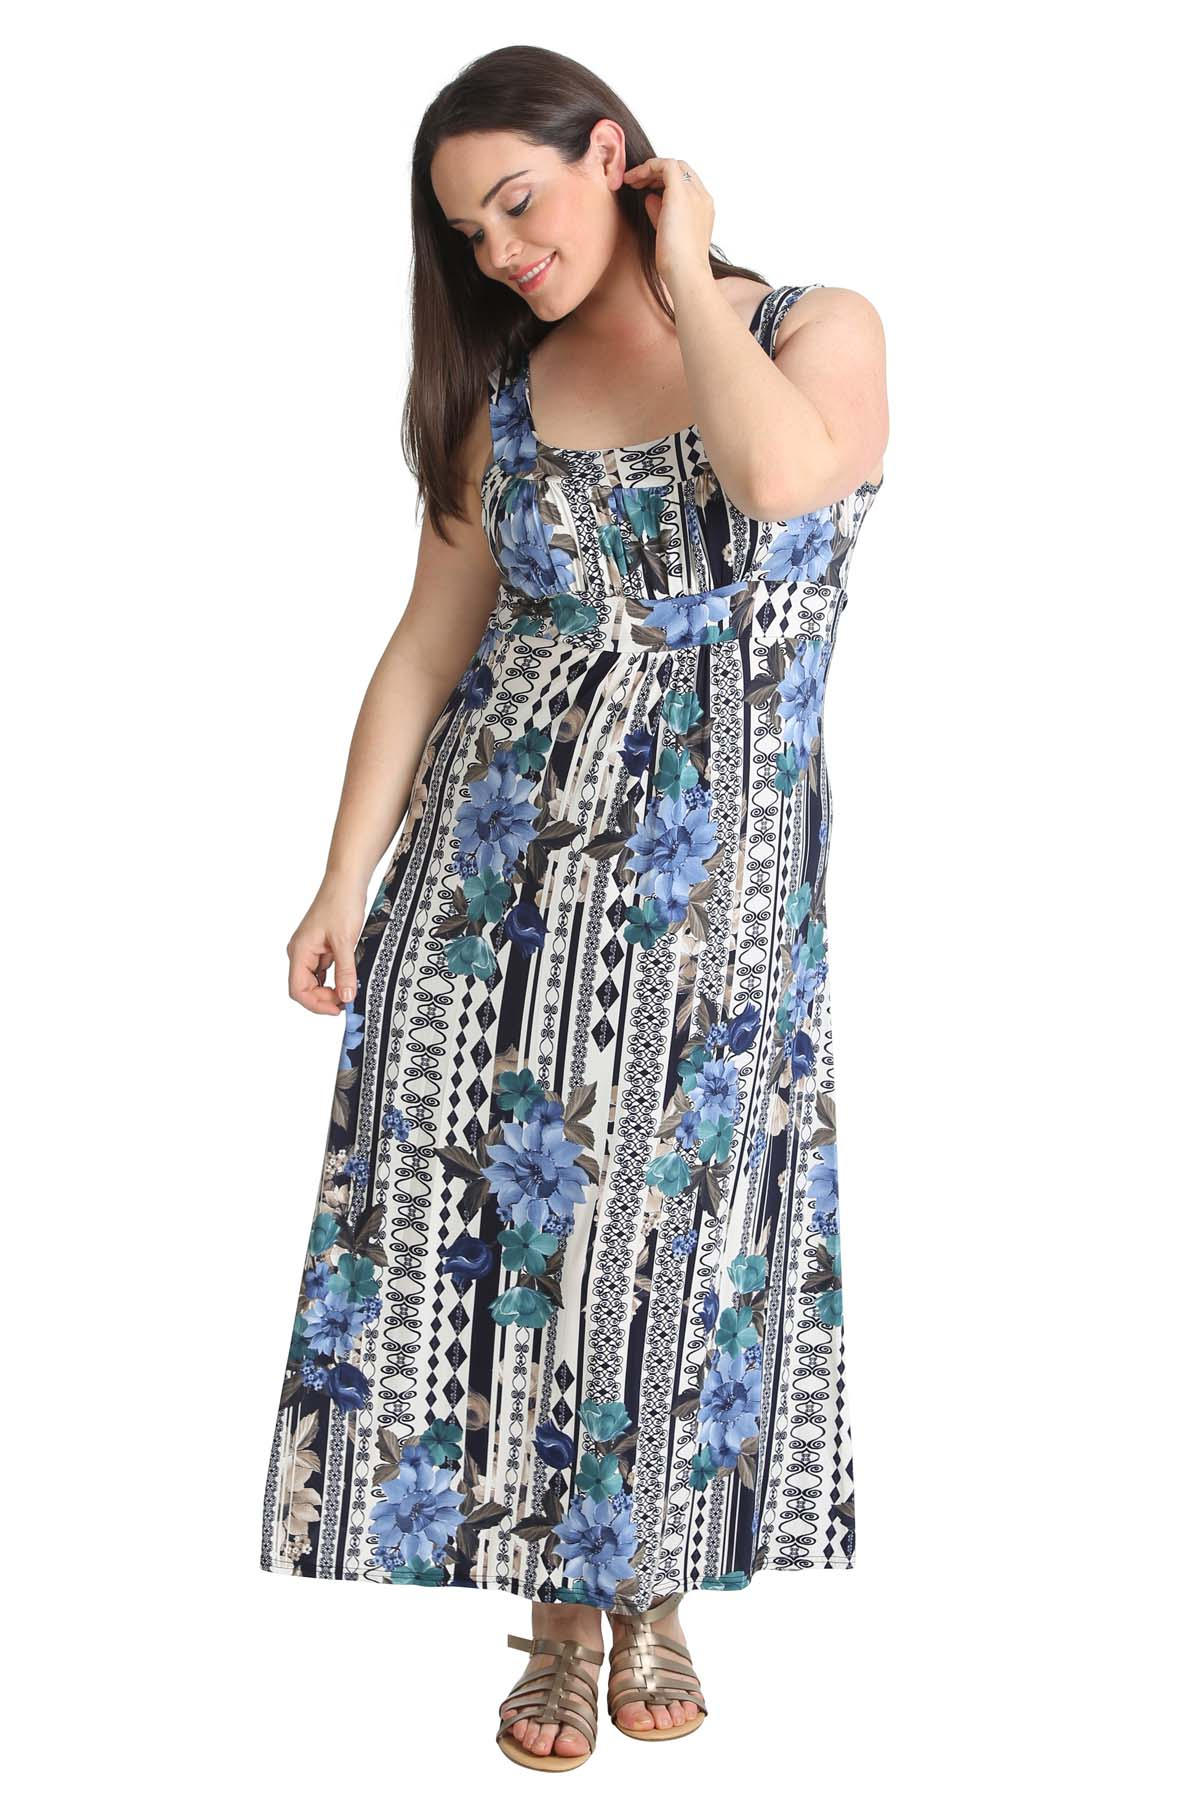 Details about New Ladies Plus Size Maxi Dress Floral Print Womens Sale  Sleeveless Nouvelle